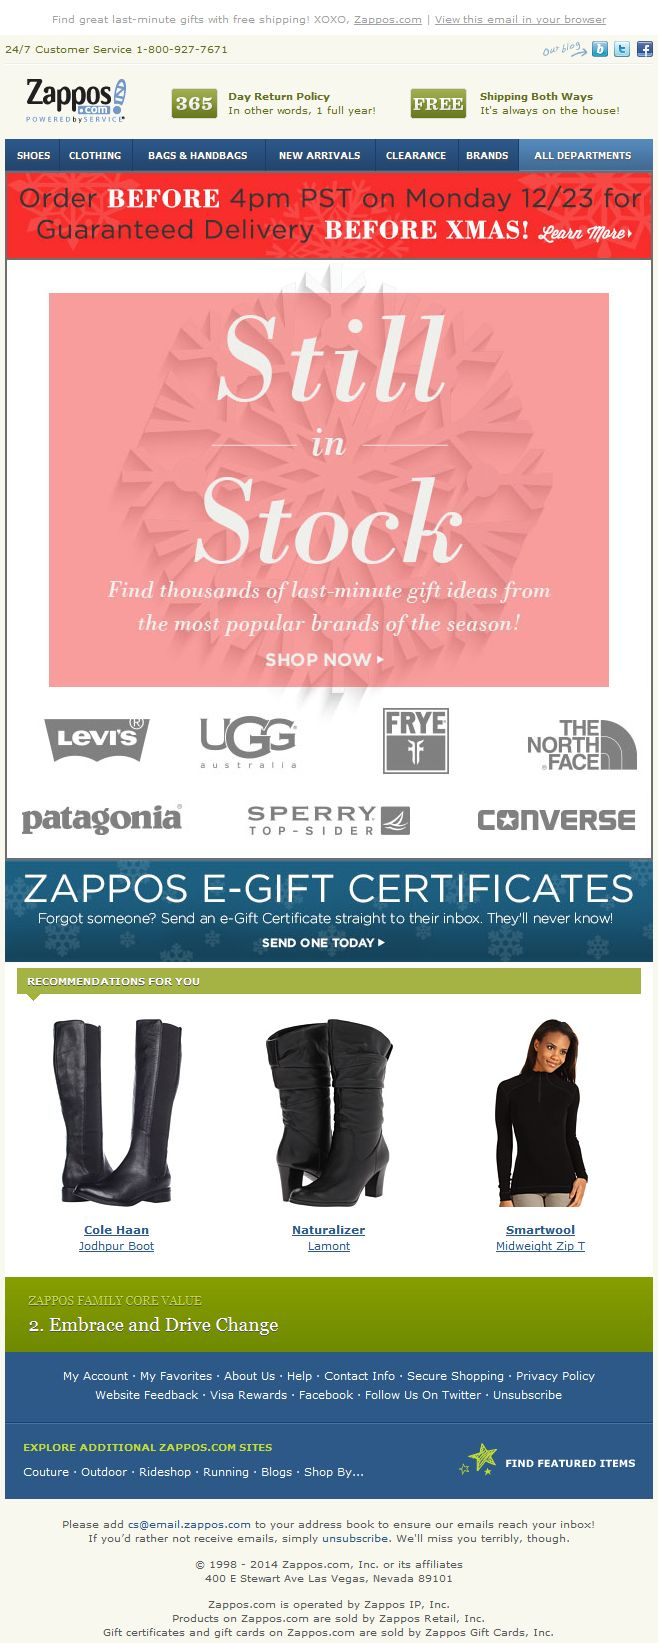 Zappos Sale Items Head over to Zappos today and you can find today's hottest deals, including discounts of anywhere from 30% to 70% off on shoes, apparel, accessories and .